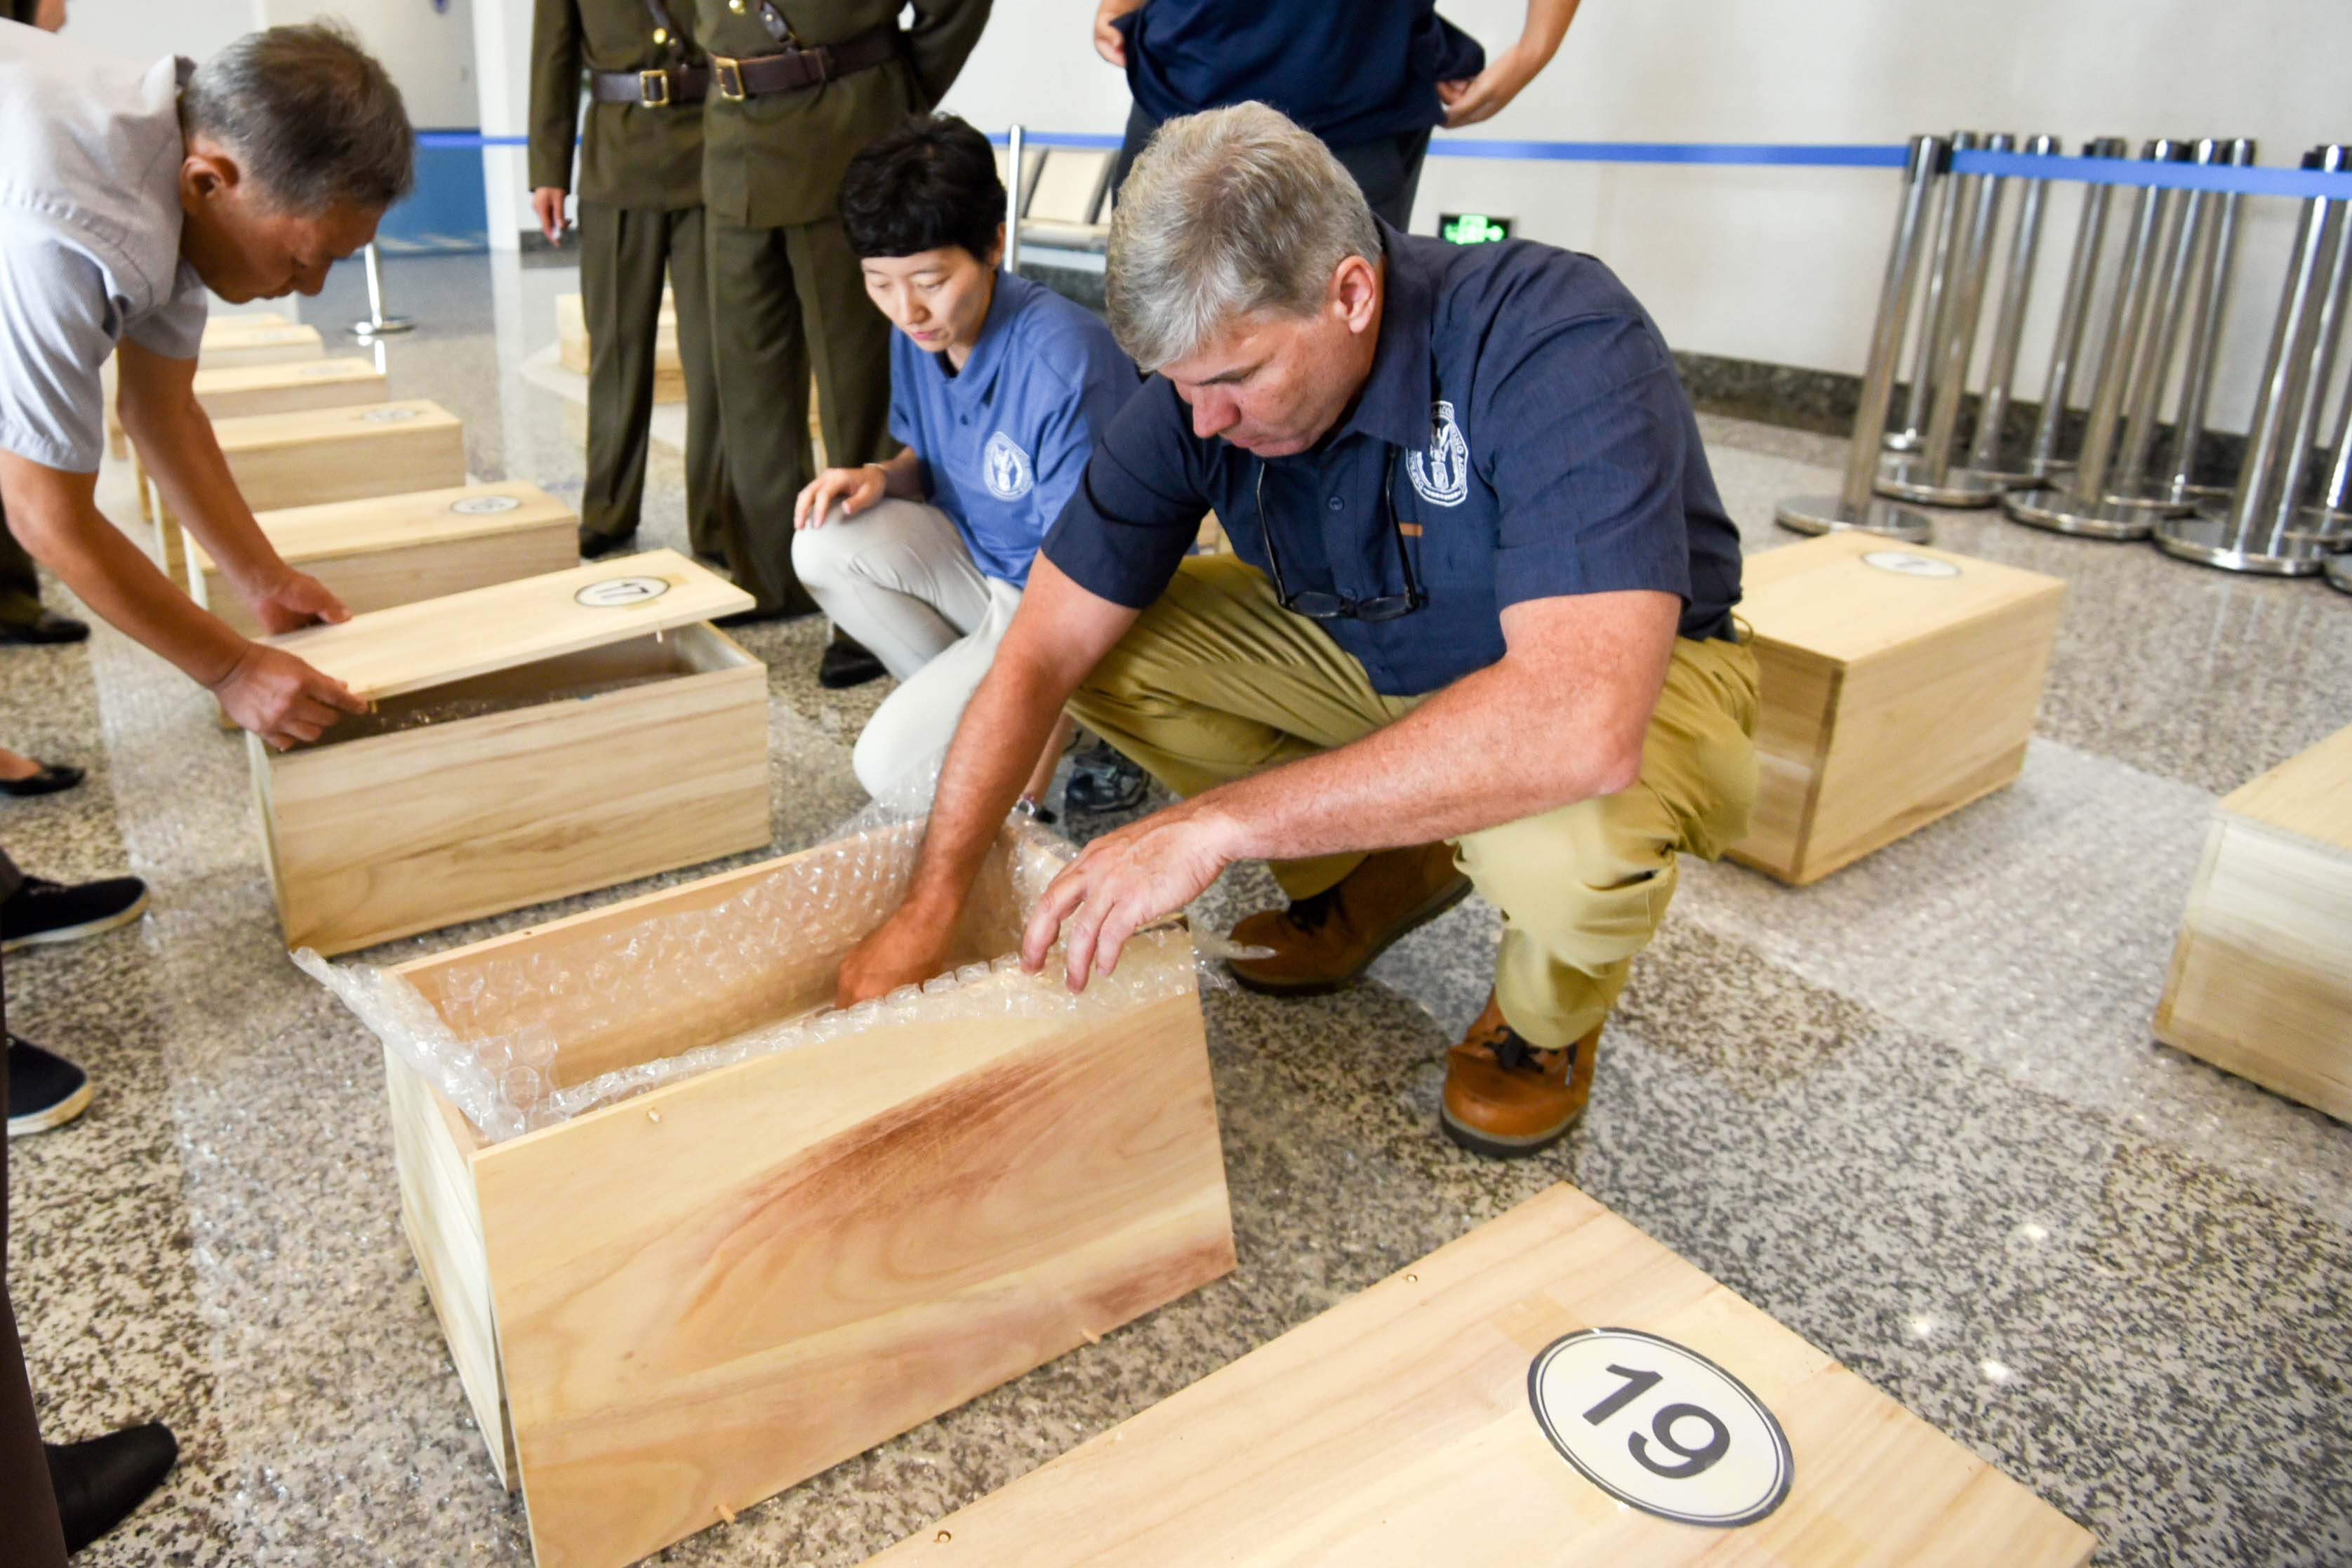 Caption: U.S. Defense Department forensic anthropologists in Wonsan, North Korea examine the contents of boxes containing the possible remains of U.S. MIAs July 27, 2018., Credit: David Marshall / U.S. Army